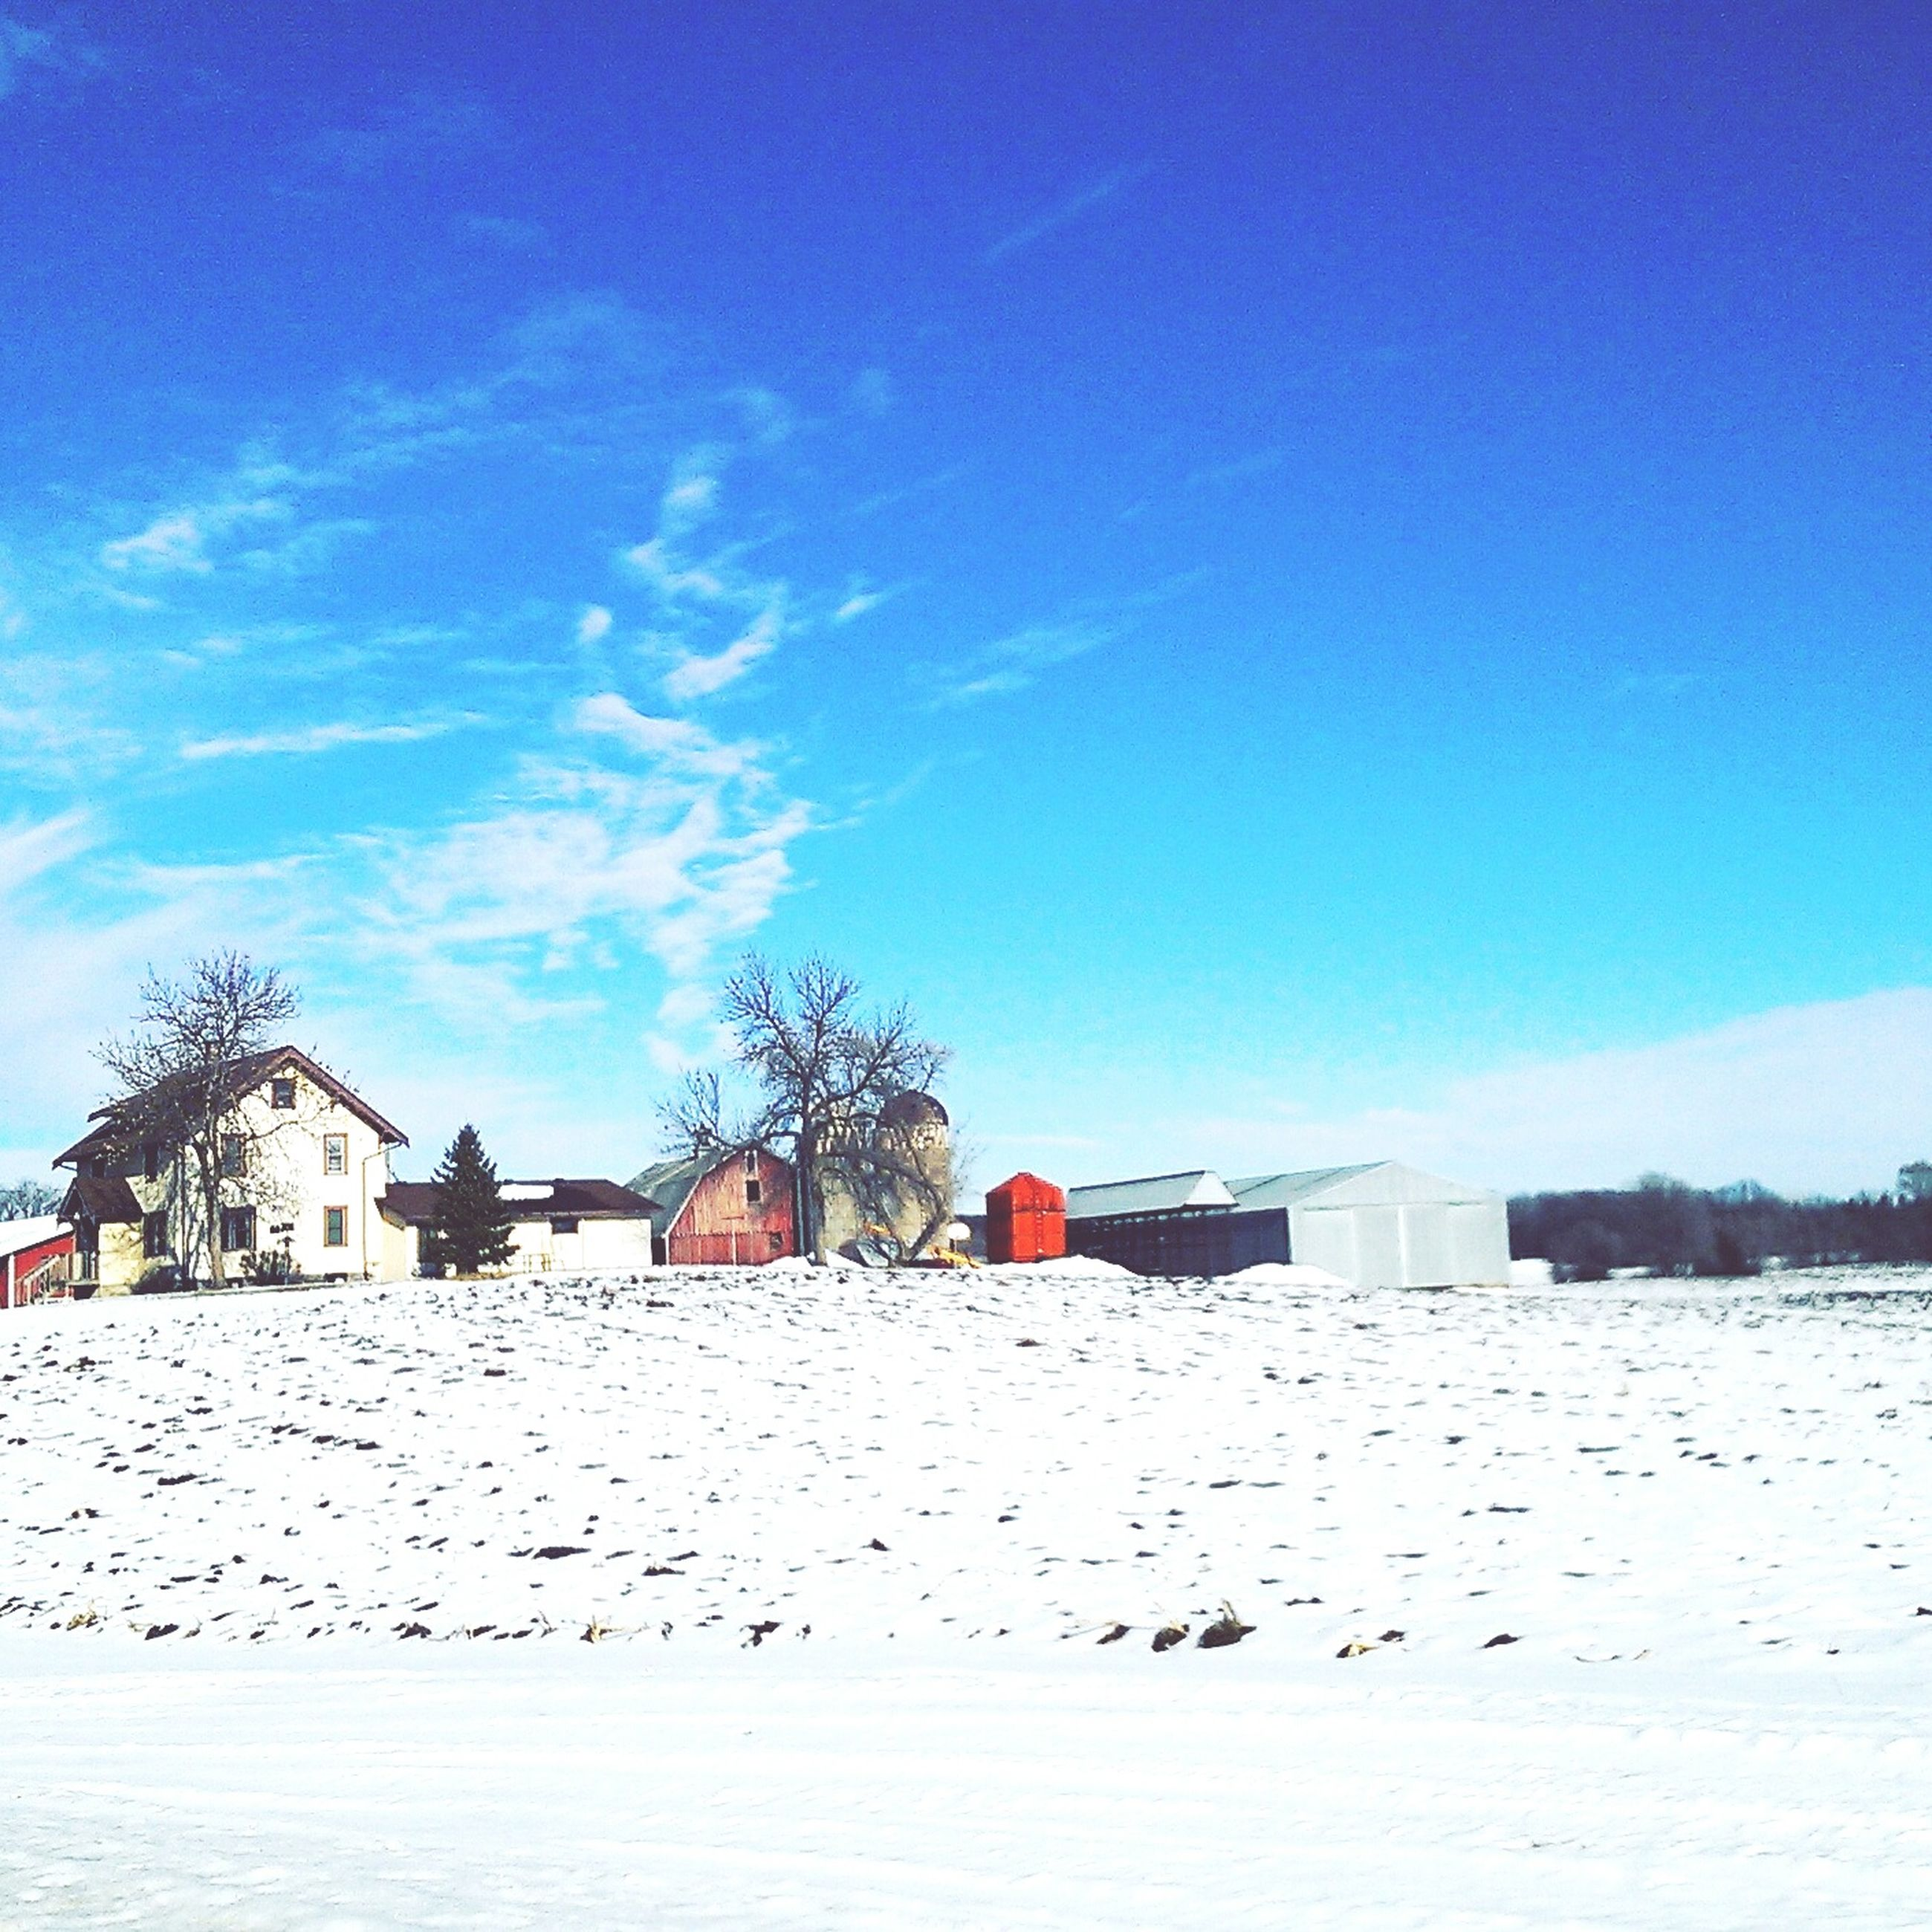 blue, building exterior, built structure, architecture, snow, winter, sky, cold temperature, house, copy space, clear sky, landscape, nature, day, sunlight, tranquility, tranquil scene, white color, outdoors, scenics